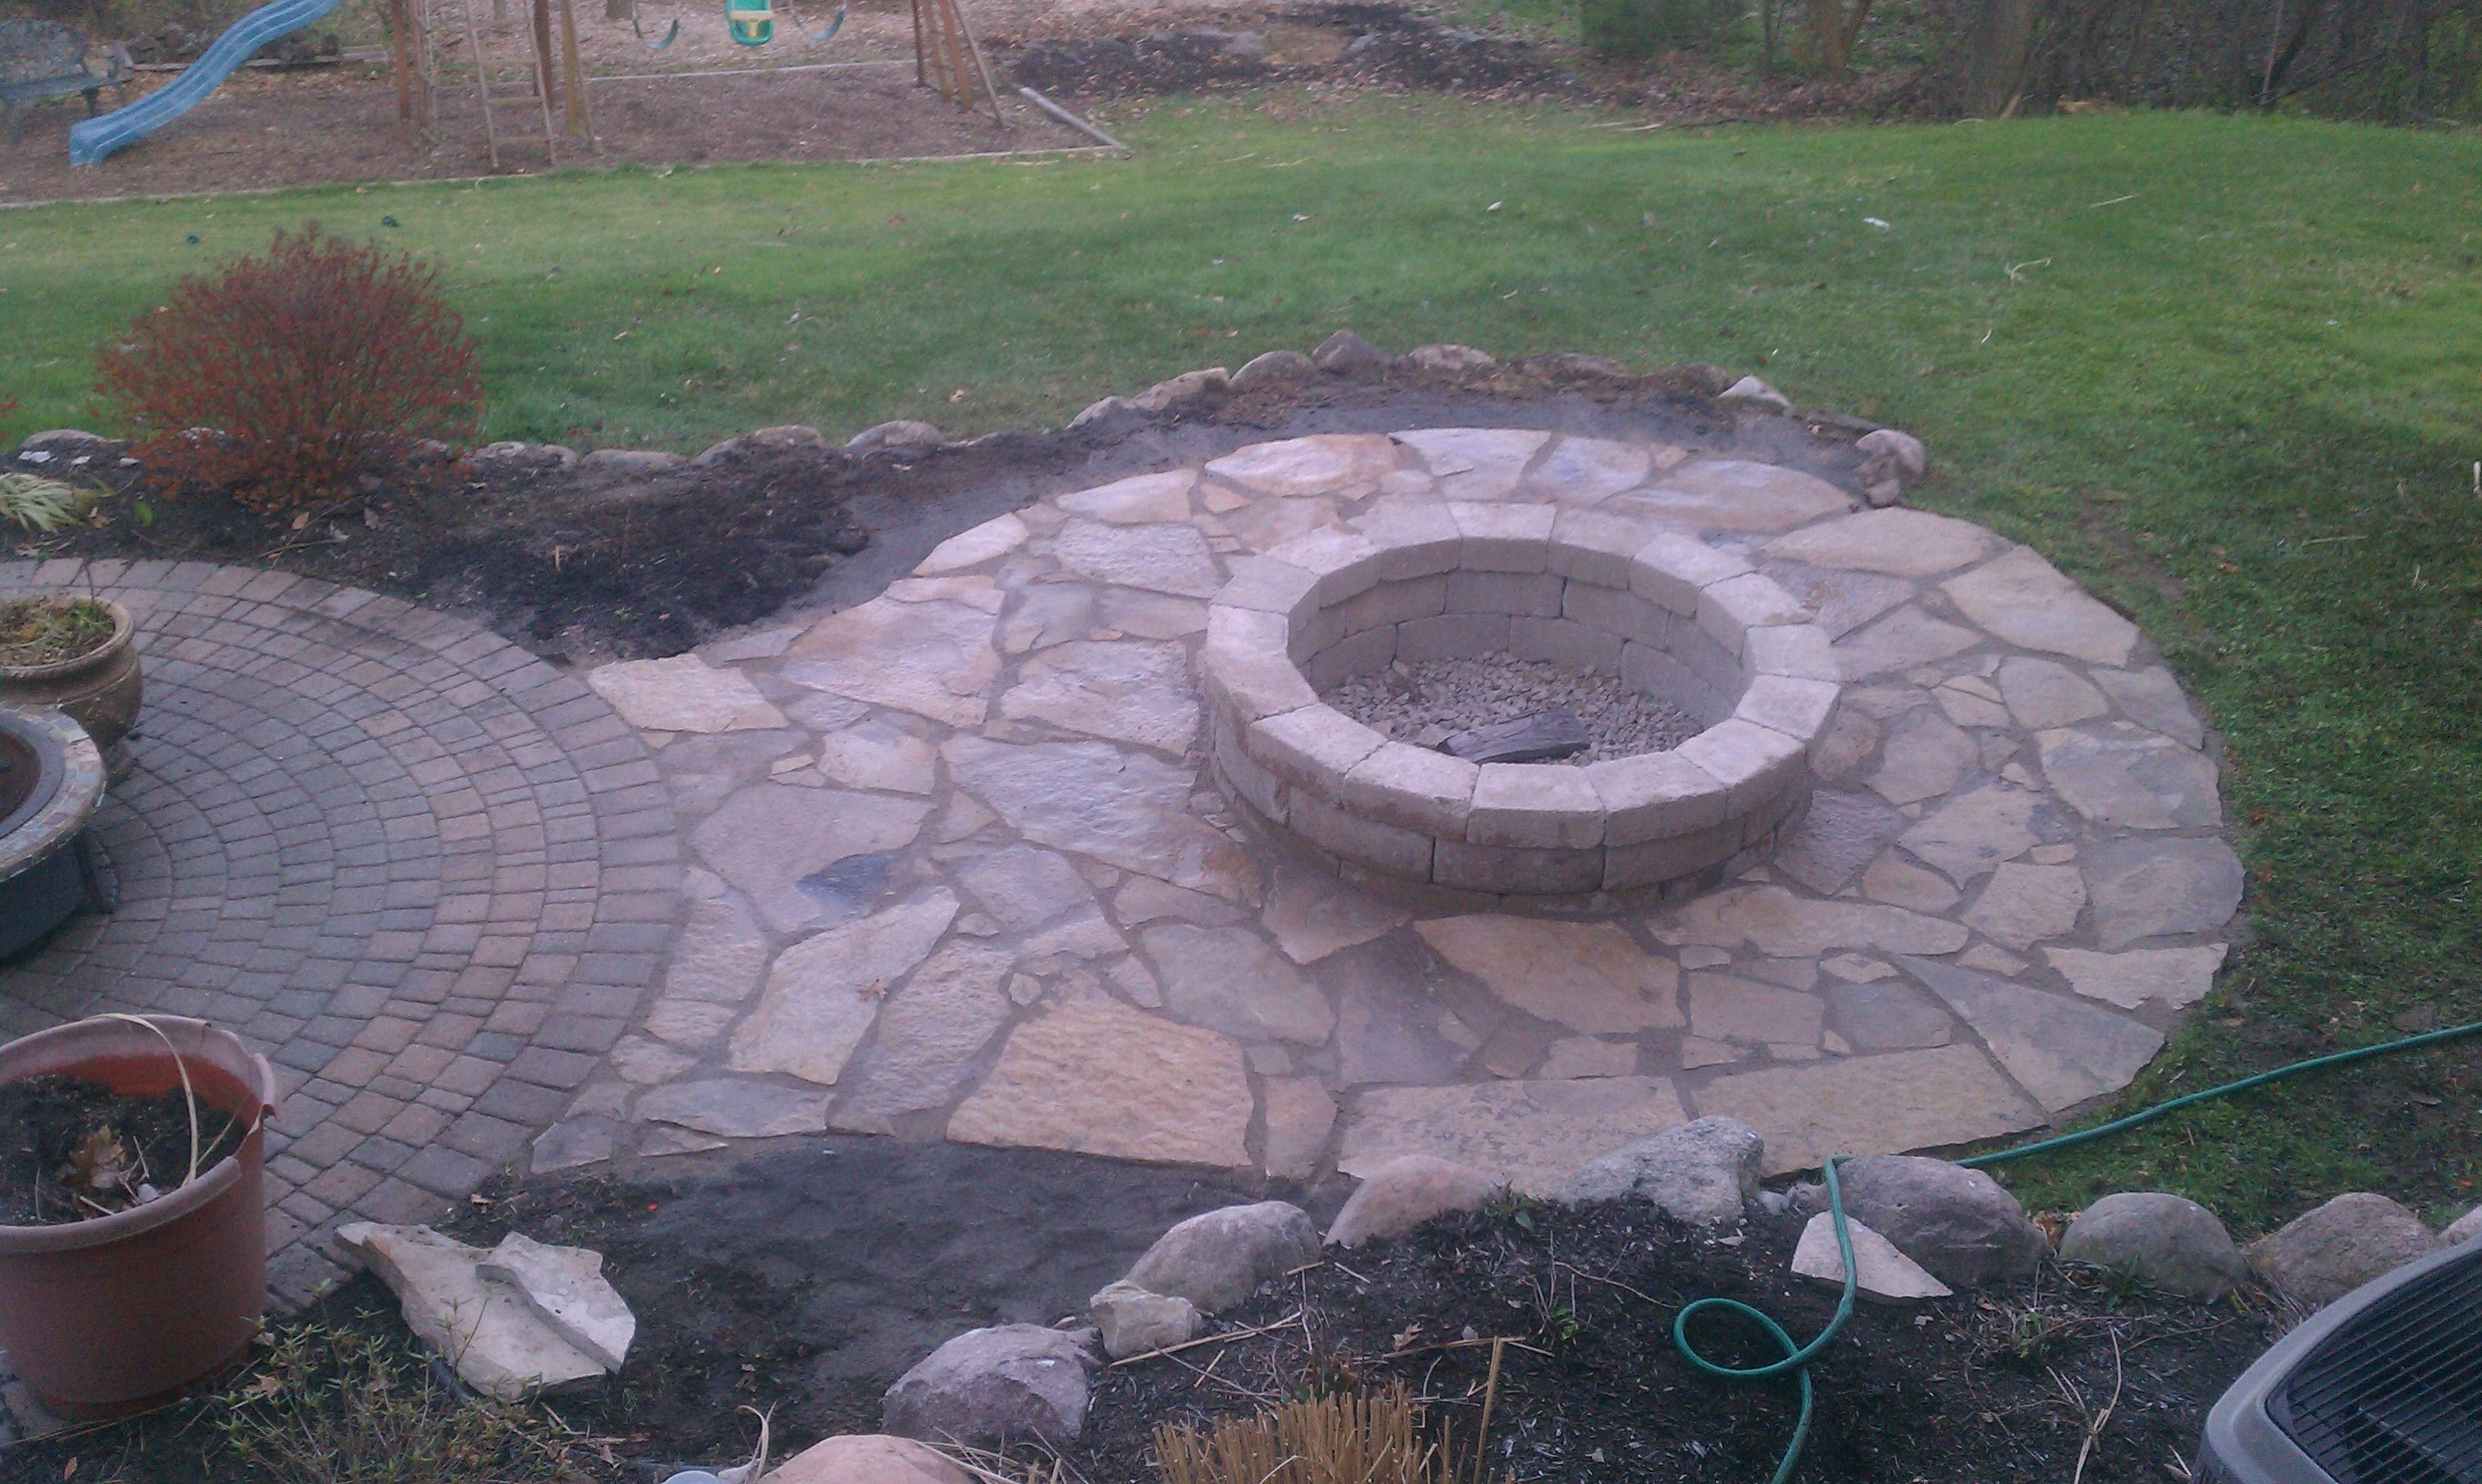 Flagstone Patio With Fire Pit Connected To Brick Paver Patio Patio Pavers Design Flagstone Patio Paver Patio